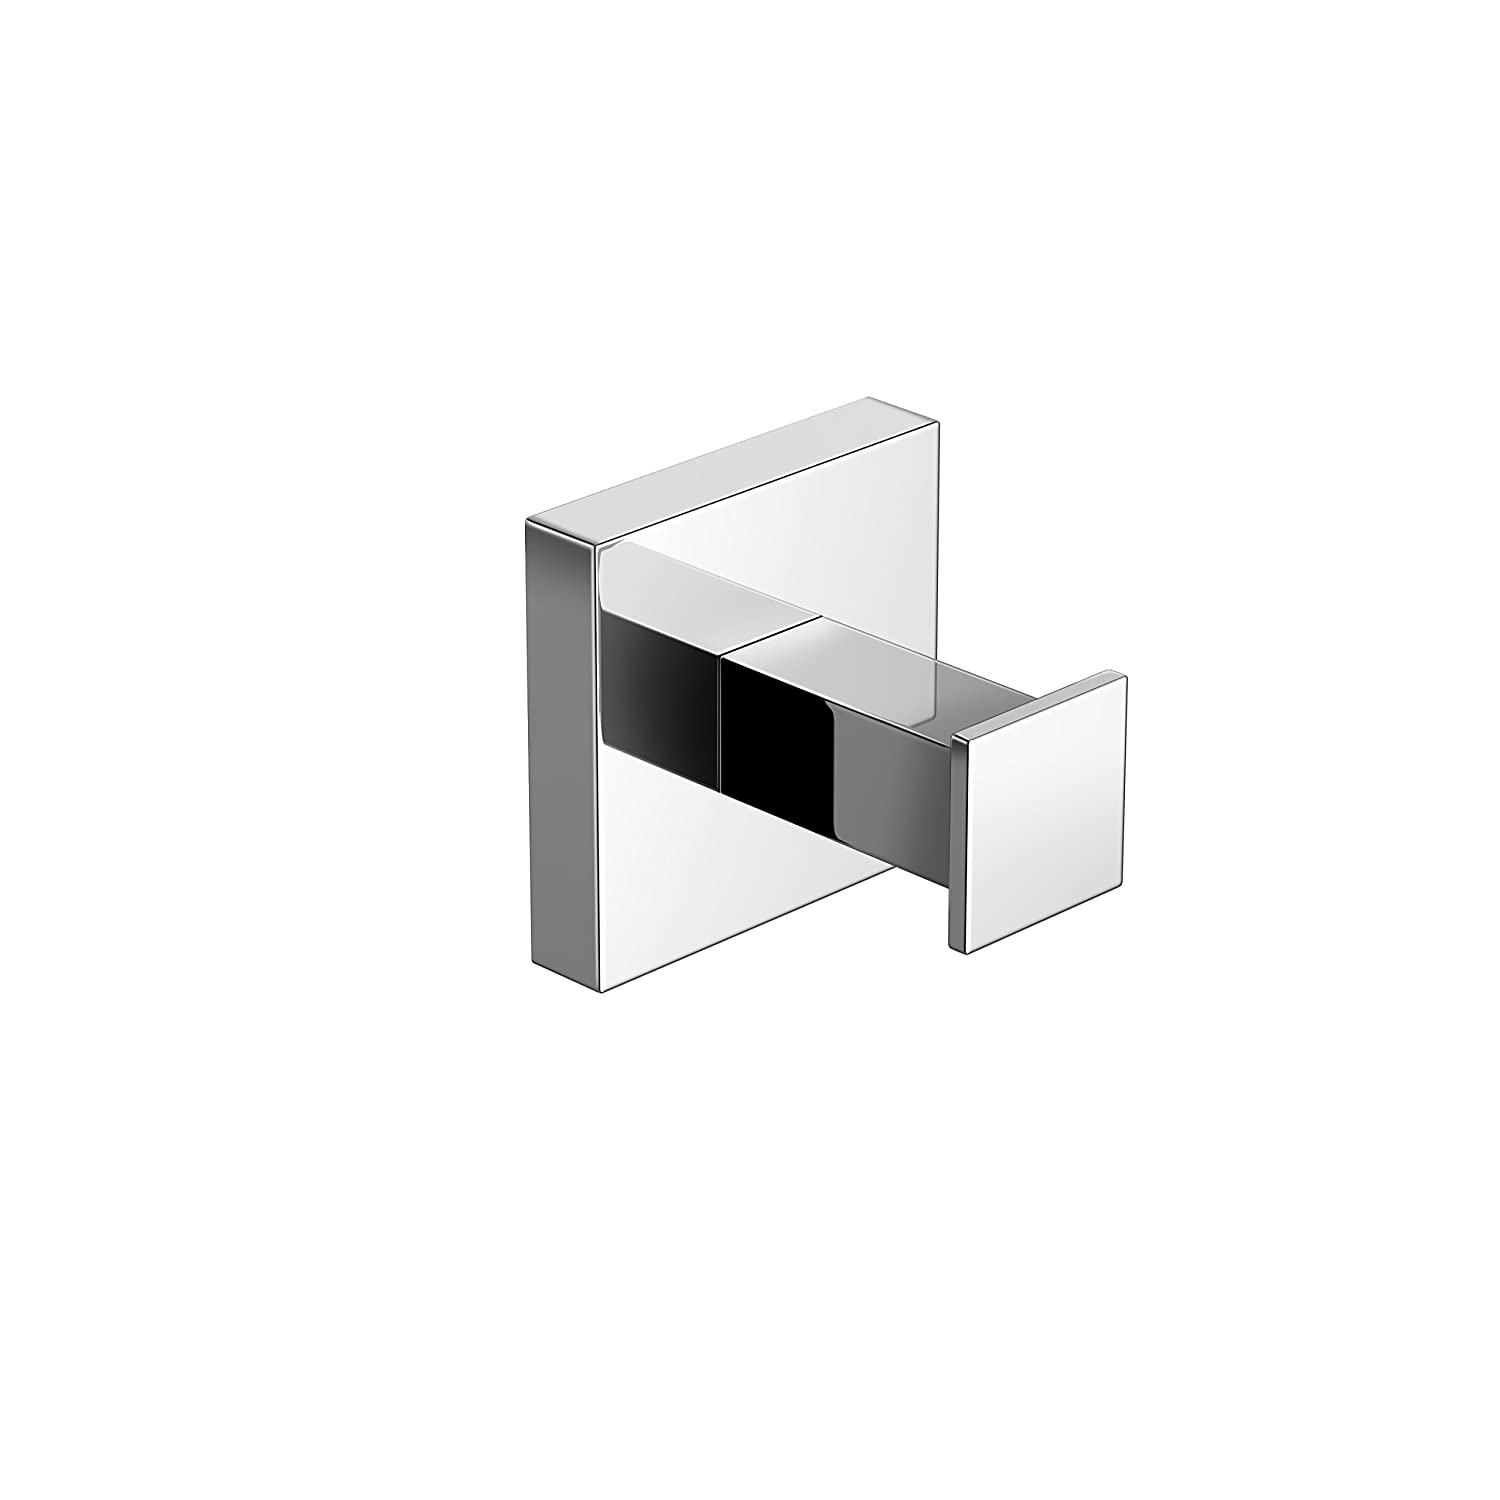 modern chrome towel robe hook luxury square bathroom accessory  - modern chrome towel robe hook luxury square bathroom accessory accibathuk amazoncouk kitchen  home